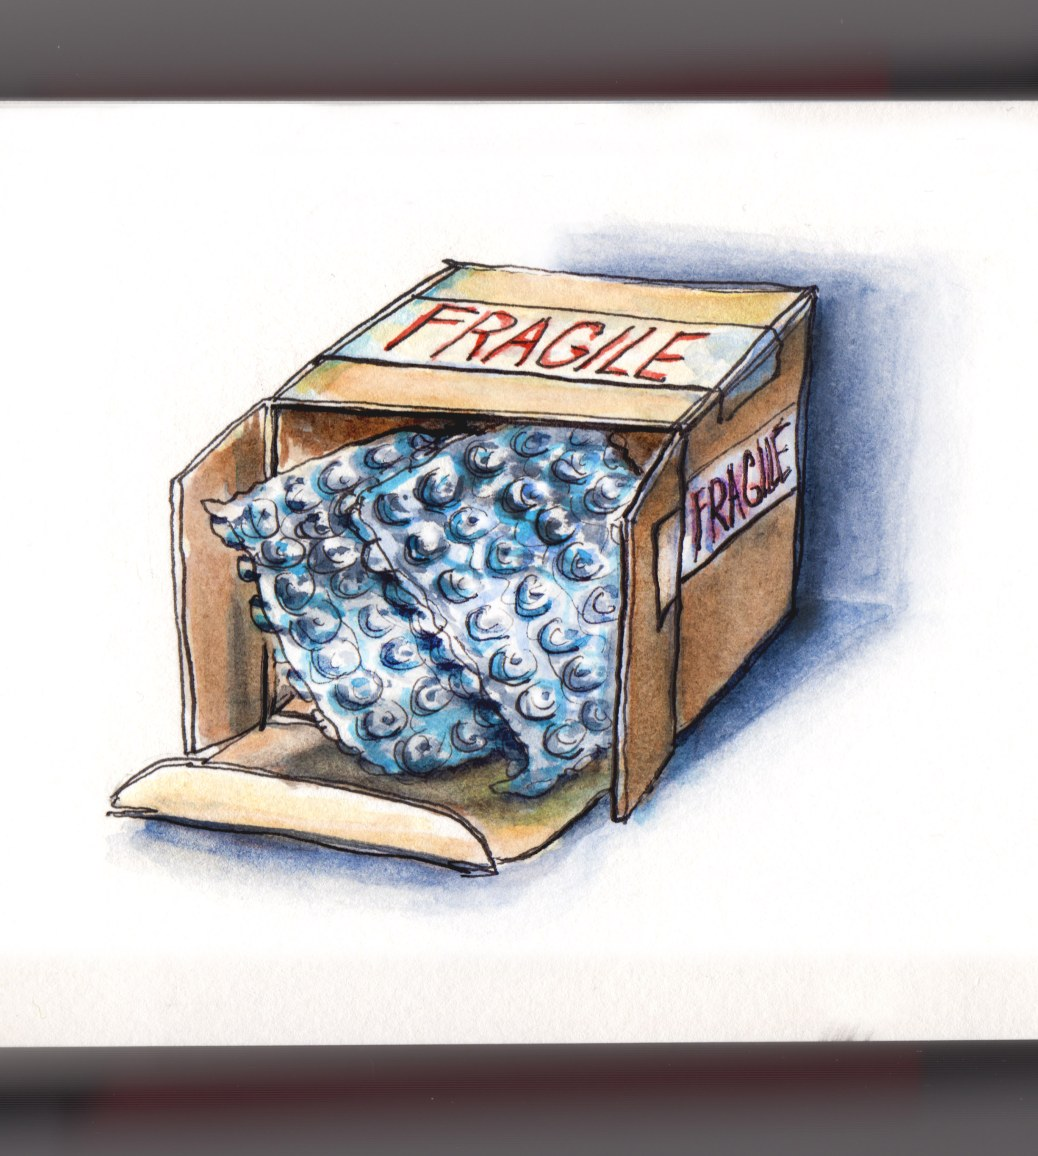 Day 30 - Popping Bubble Wrap in Fragile Box